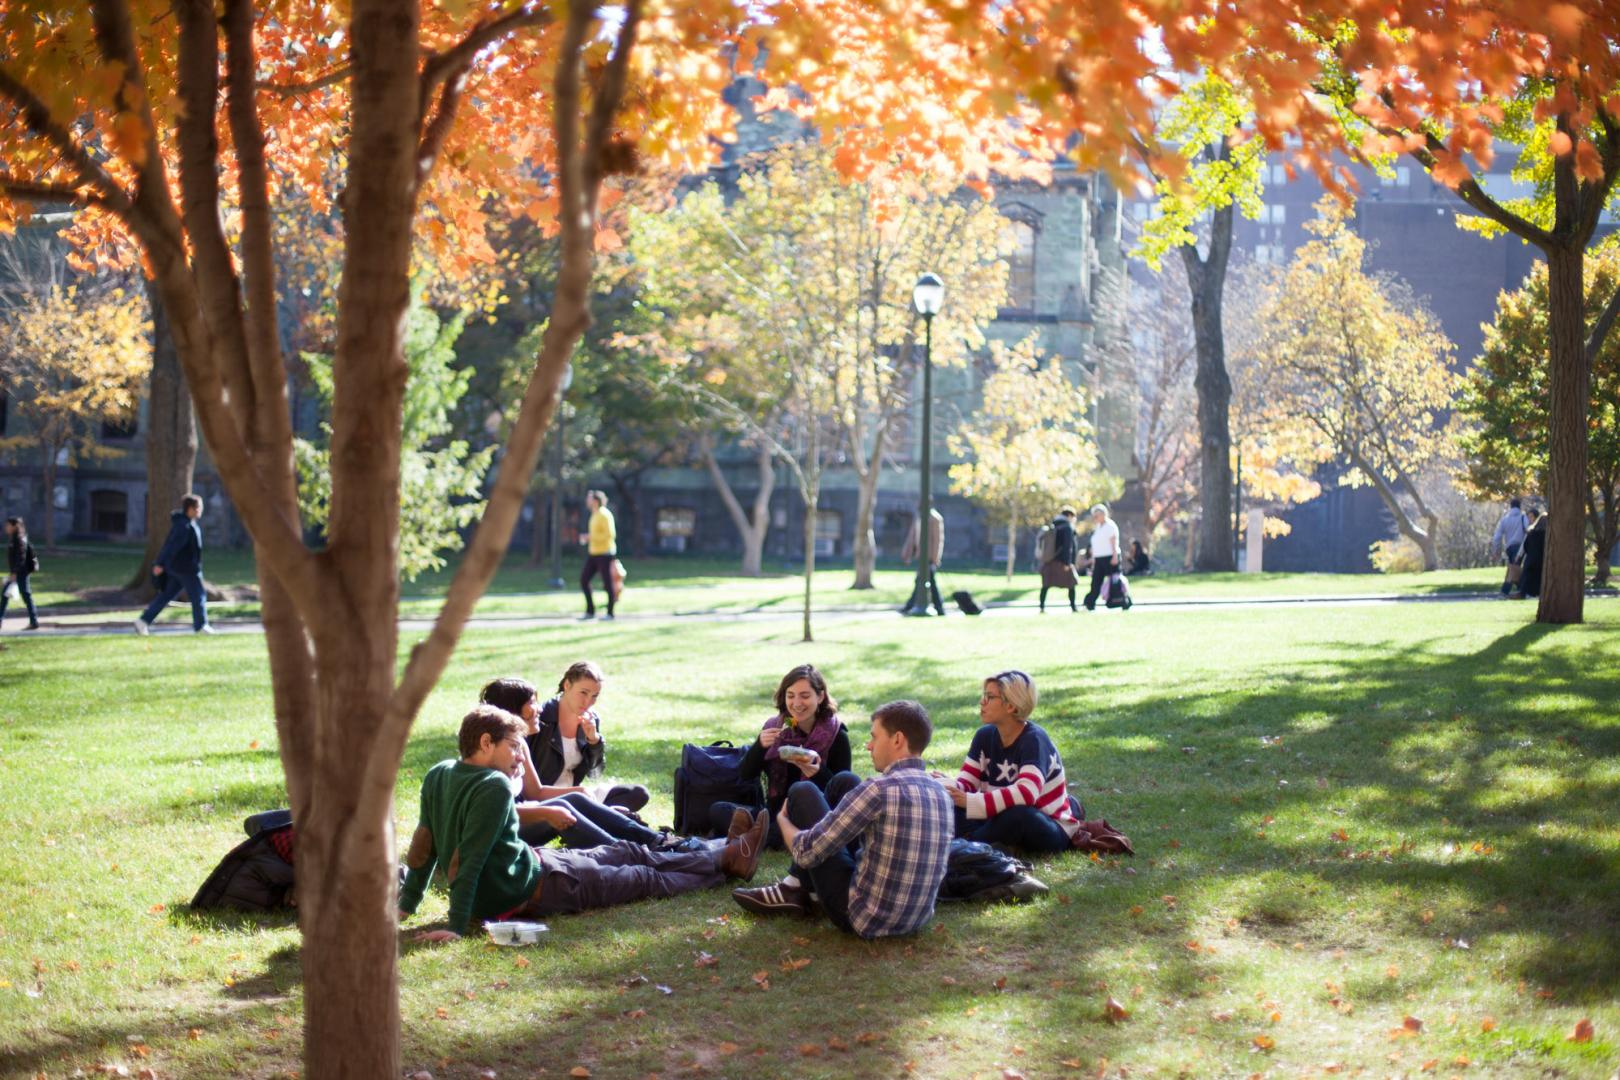 ED RD students sitting on college green in the fall